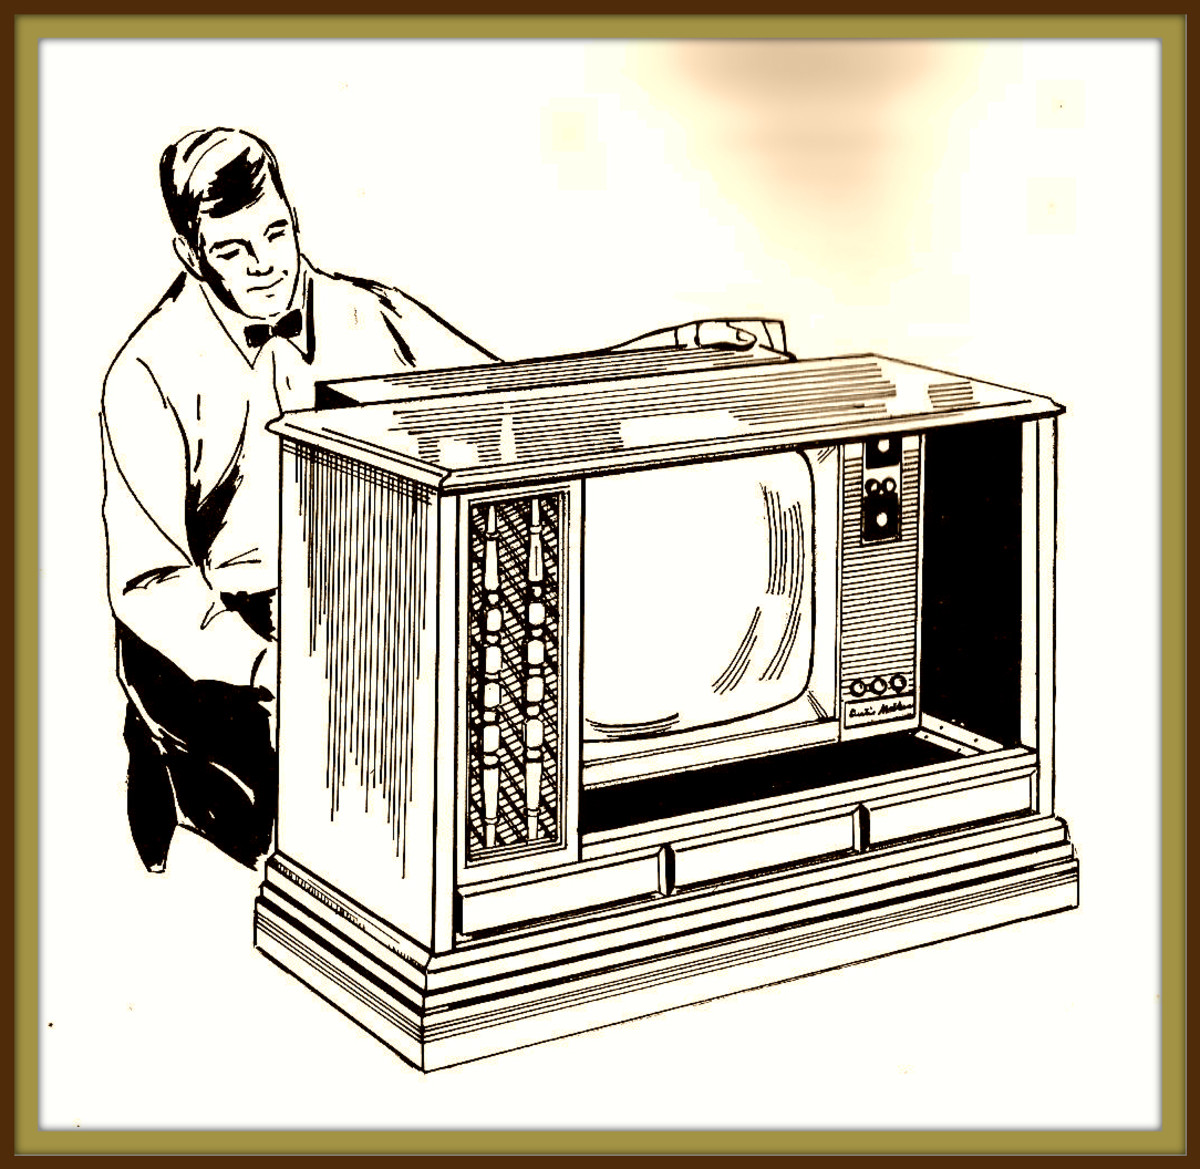 It was a marvelous thing to realize that with the Curtis Mathes Modular Program you would be able to keep your cherished heirloom cabinet and insert in it the module television of the future!